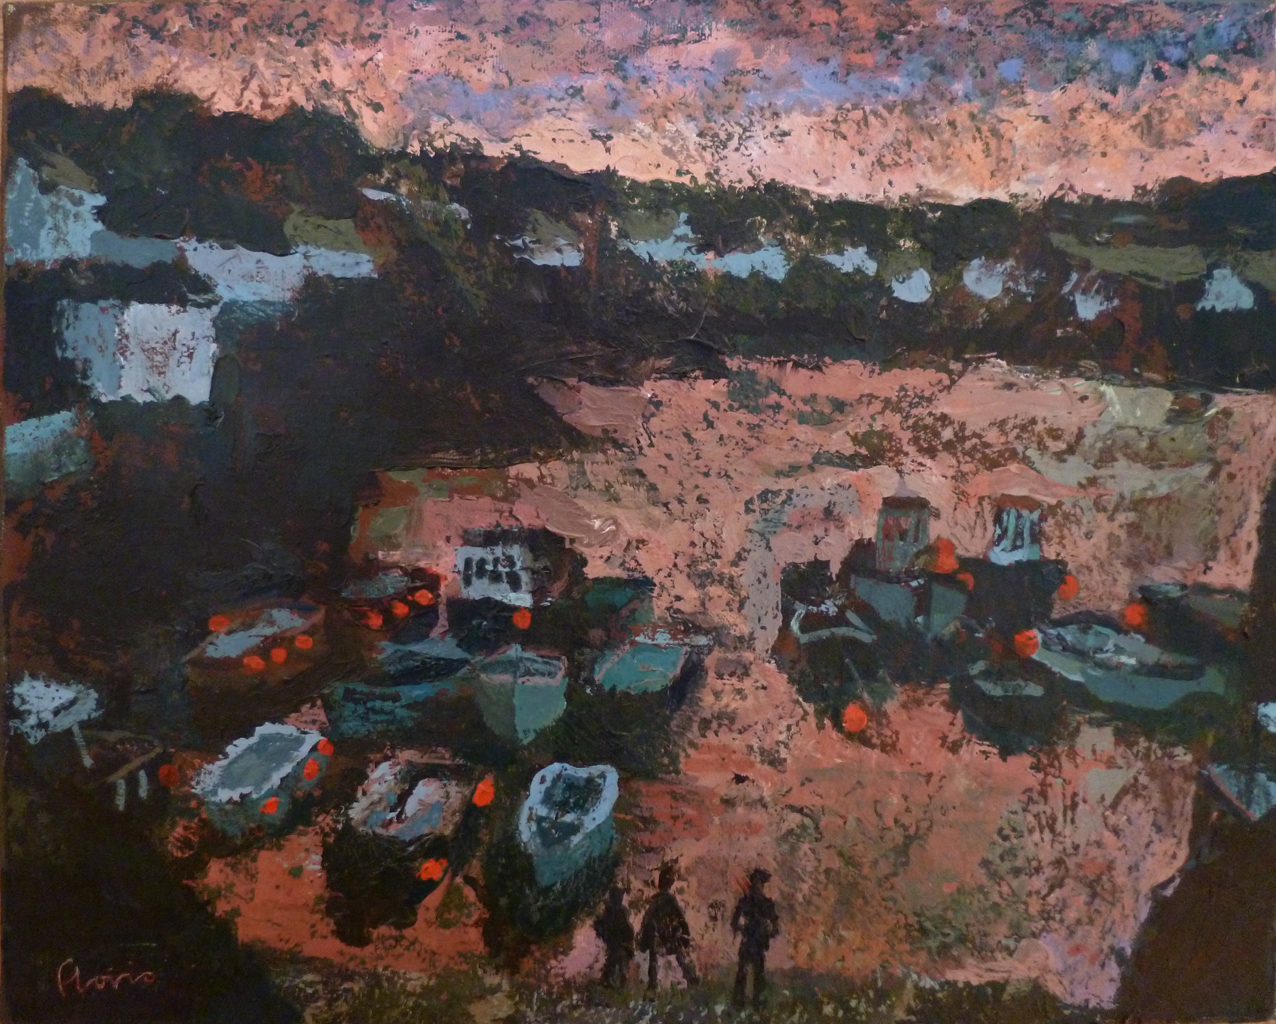 Coverack sunset, 2015, acrylic on canvas, 20 x 16 in